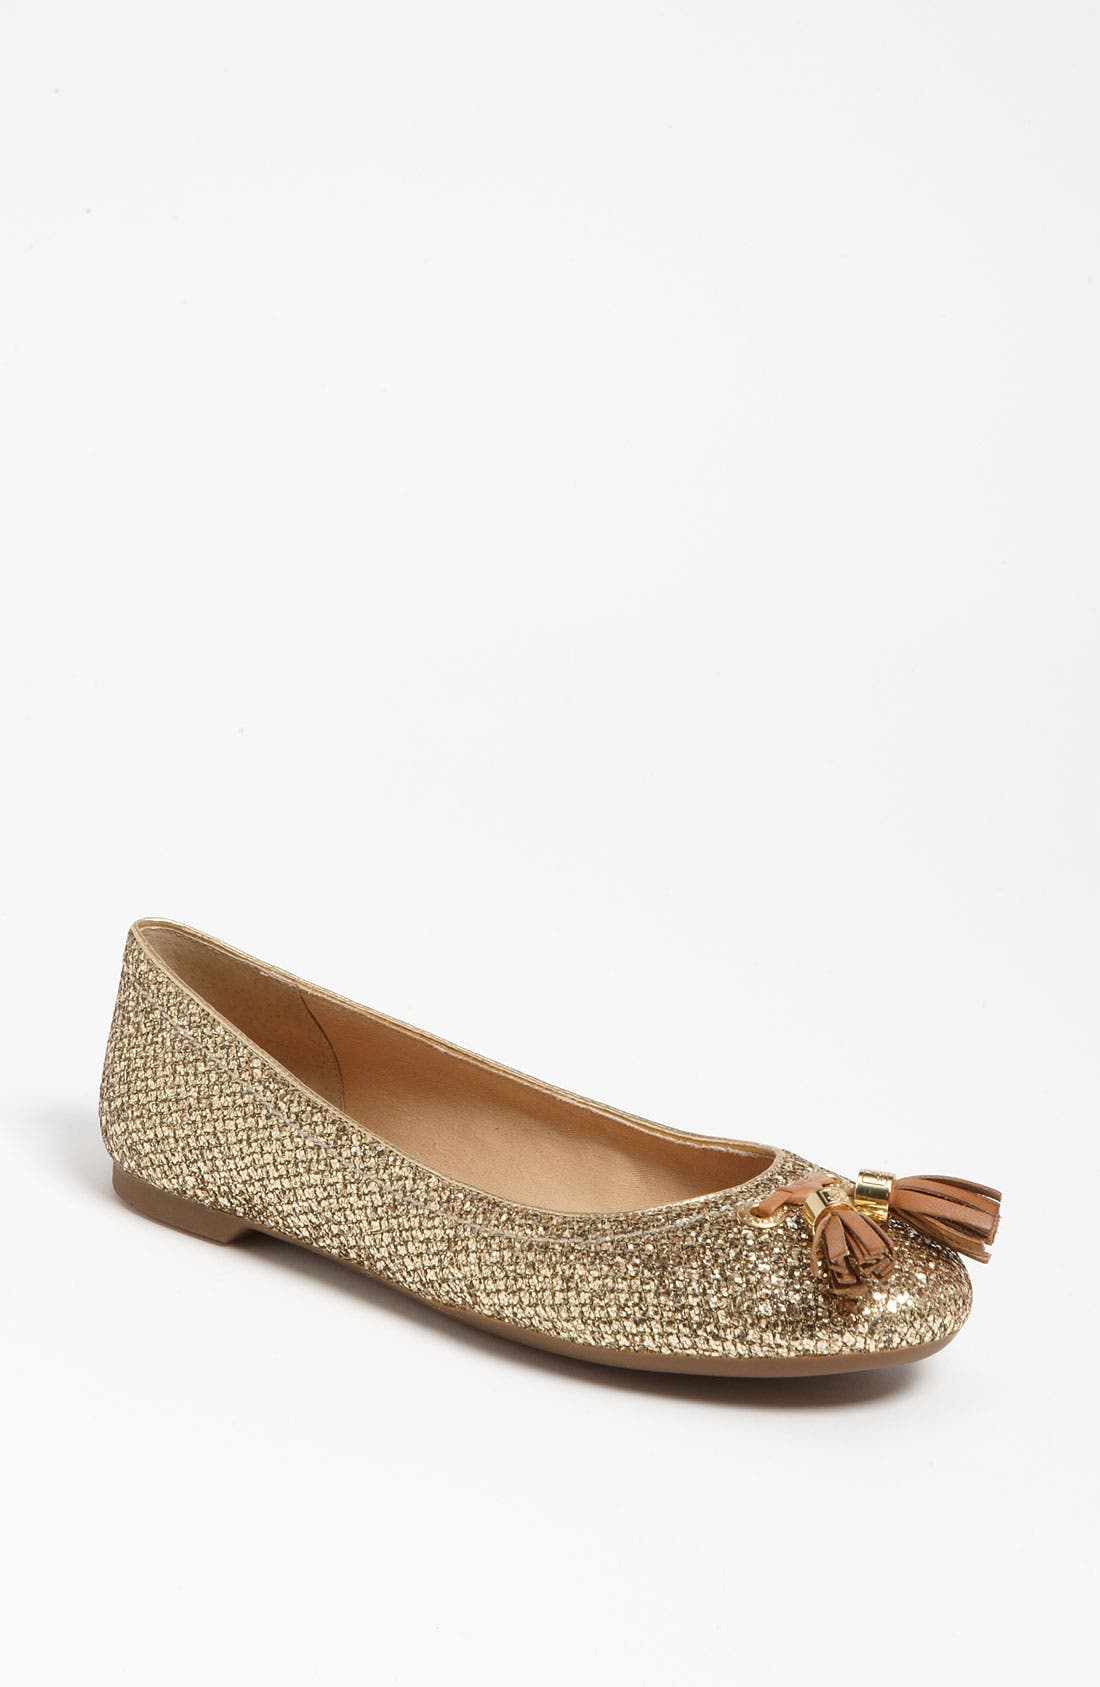 Alternate Image 1 Selected - Sperry Top-Sider® 'Bliss' Flat